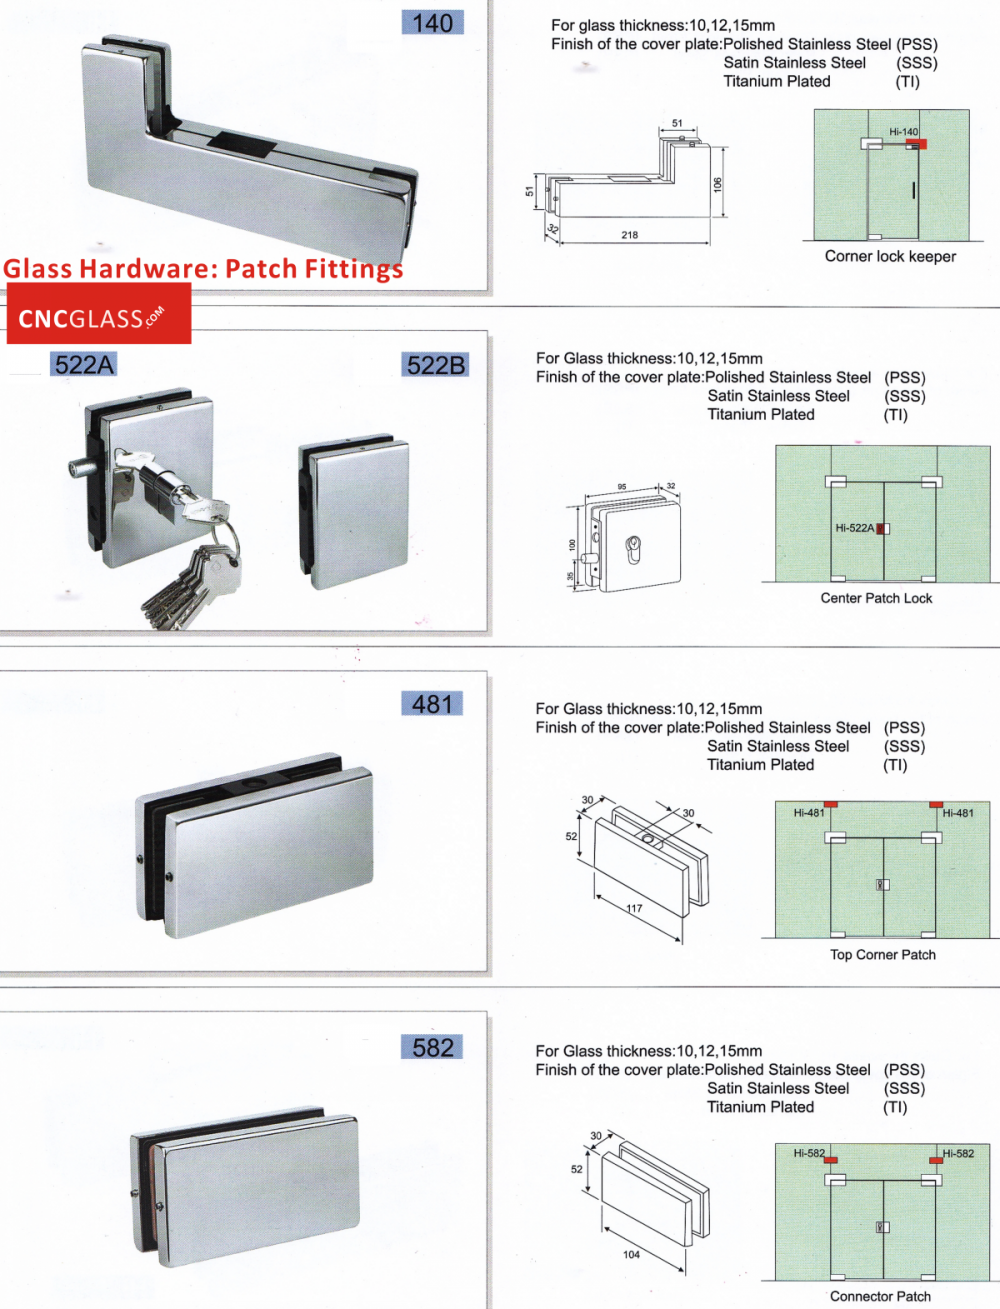 Patch Fittings Glass Hardware Door Hardware Hot Knife